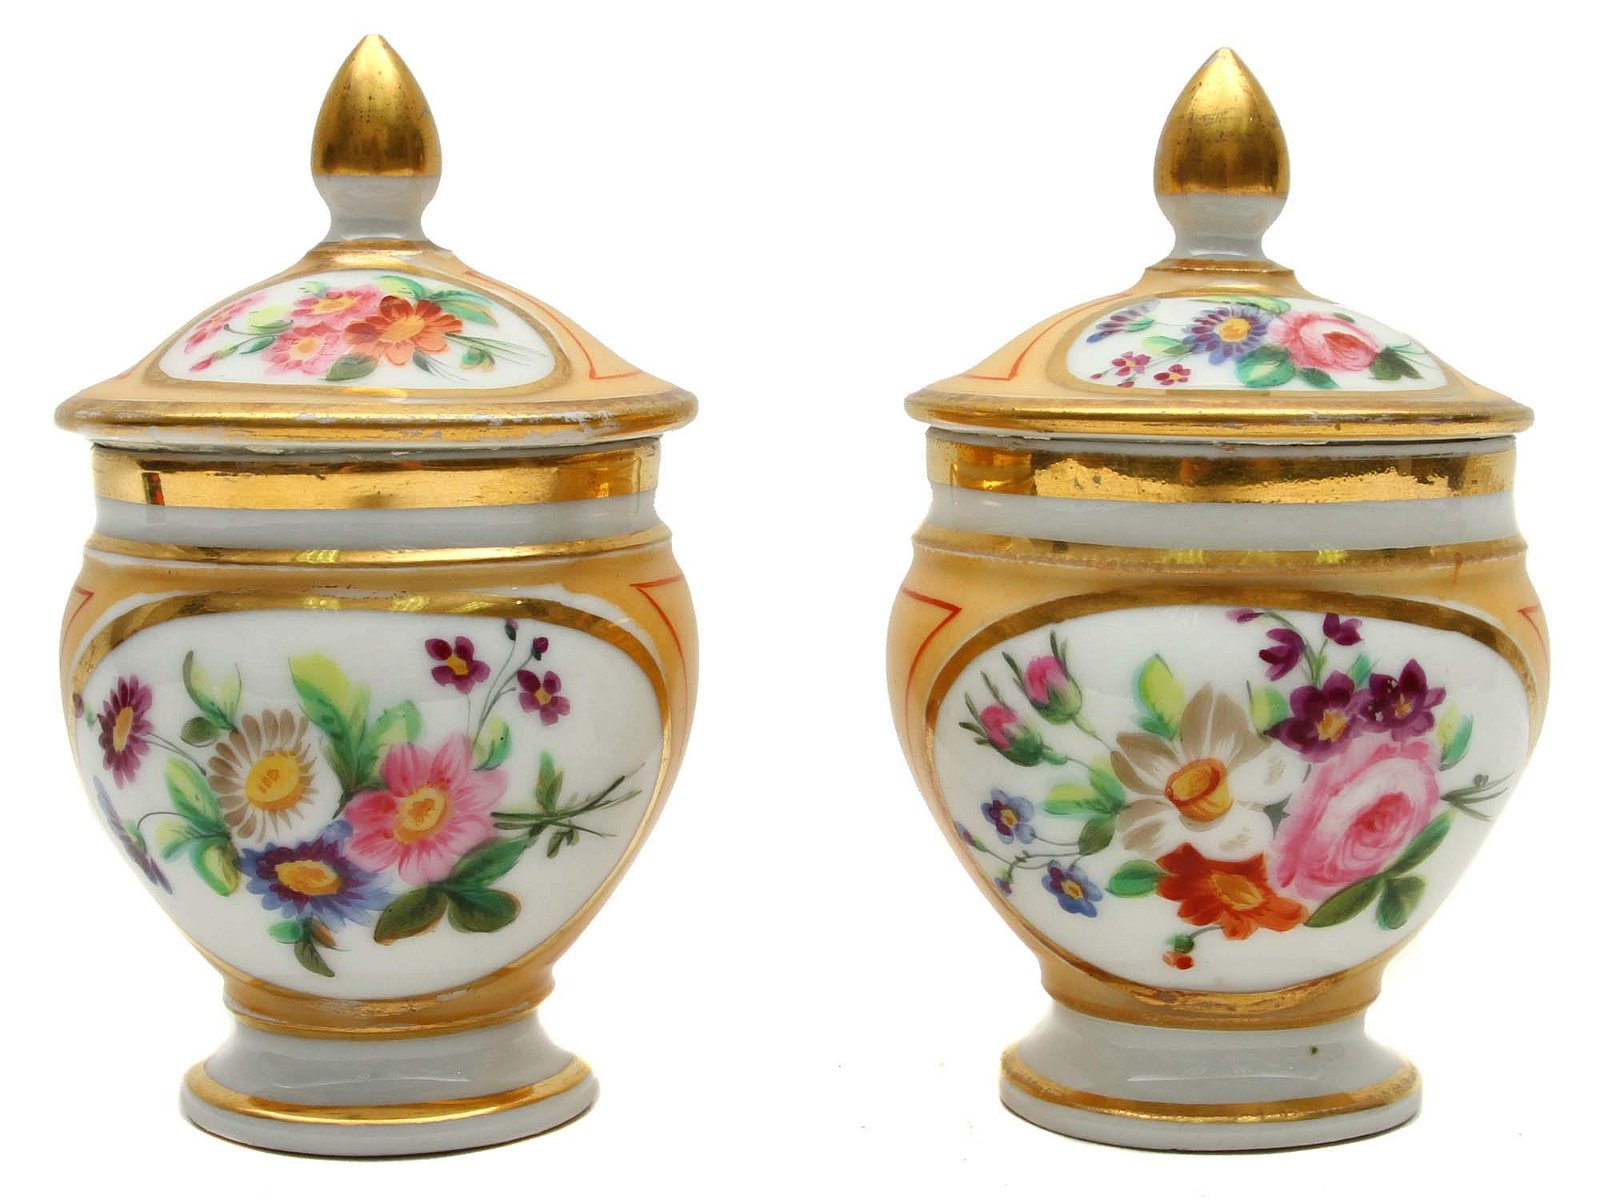 A PAIR OF RUSSIAN POPOV PORCELAIN POTS WITH FLOWERS